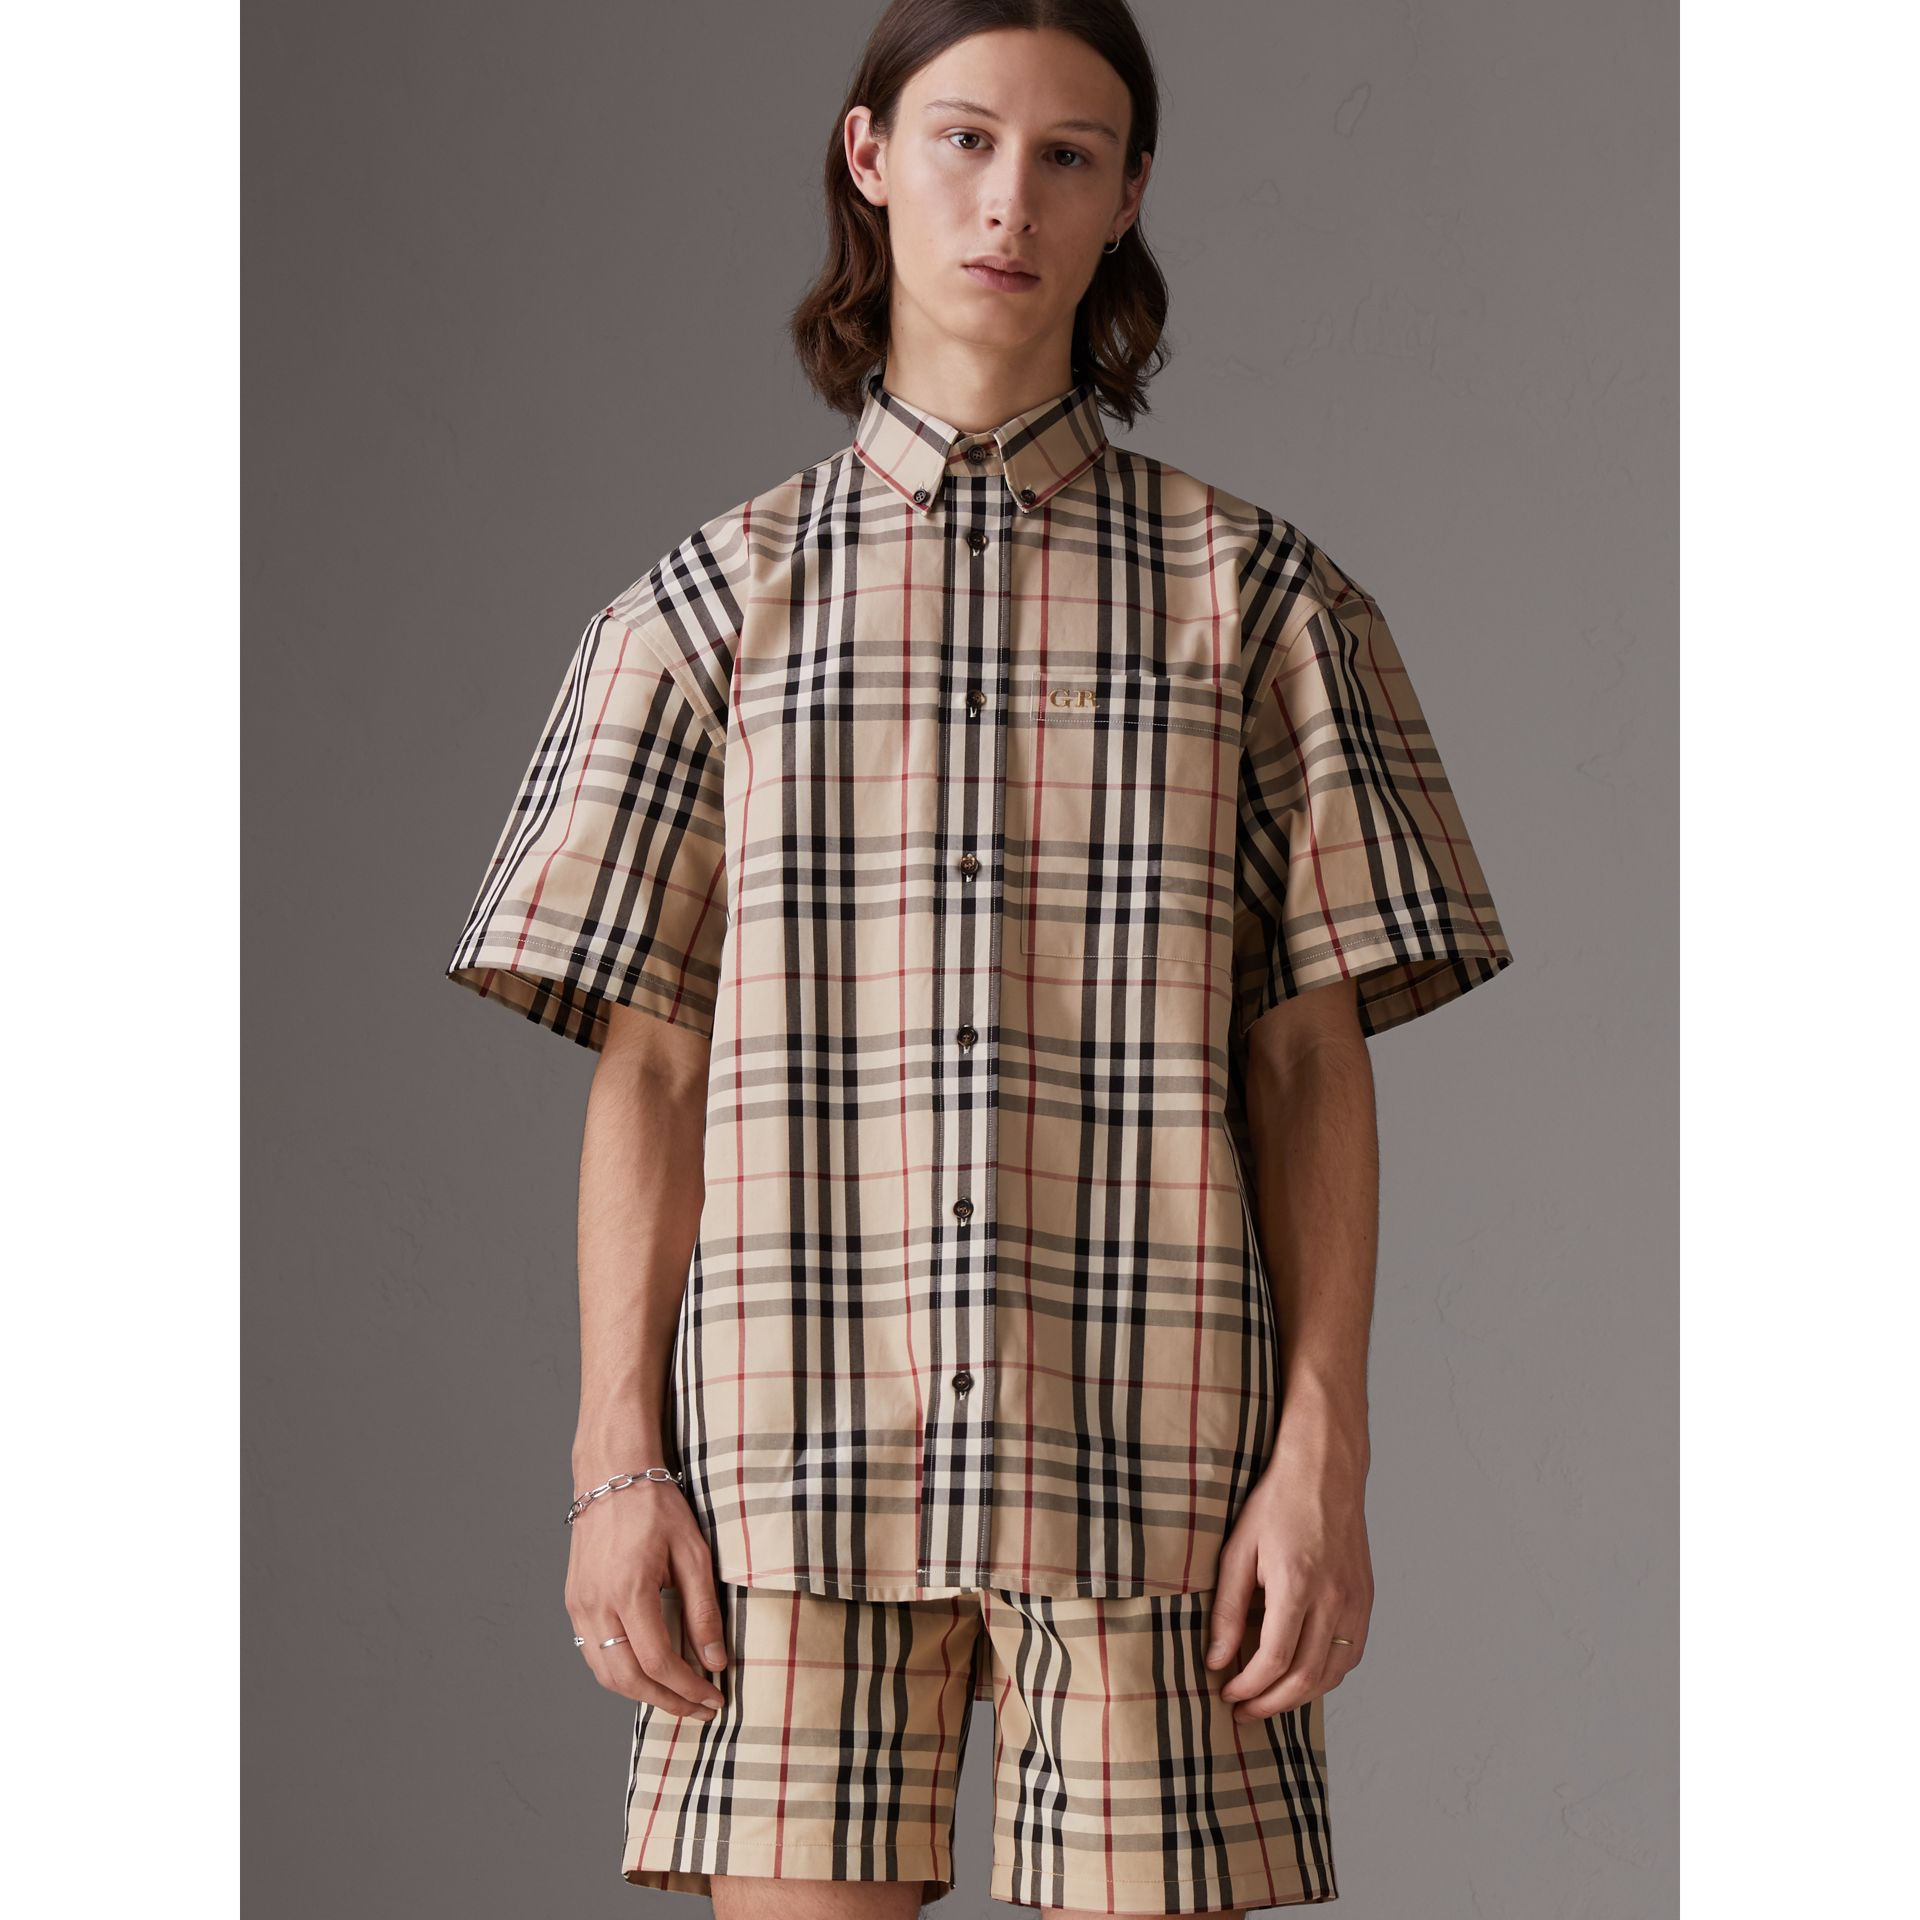 Gosha x Burberry Short-sleeve Check Shirt in Honey | Burberry Hong Kong - gallery image 0